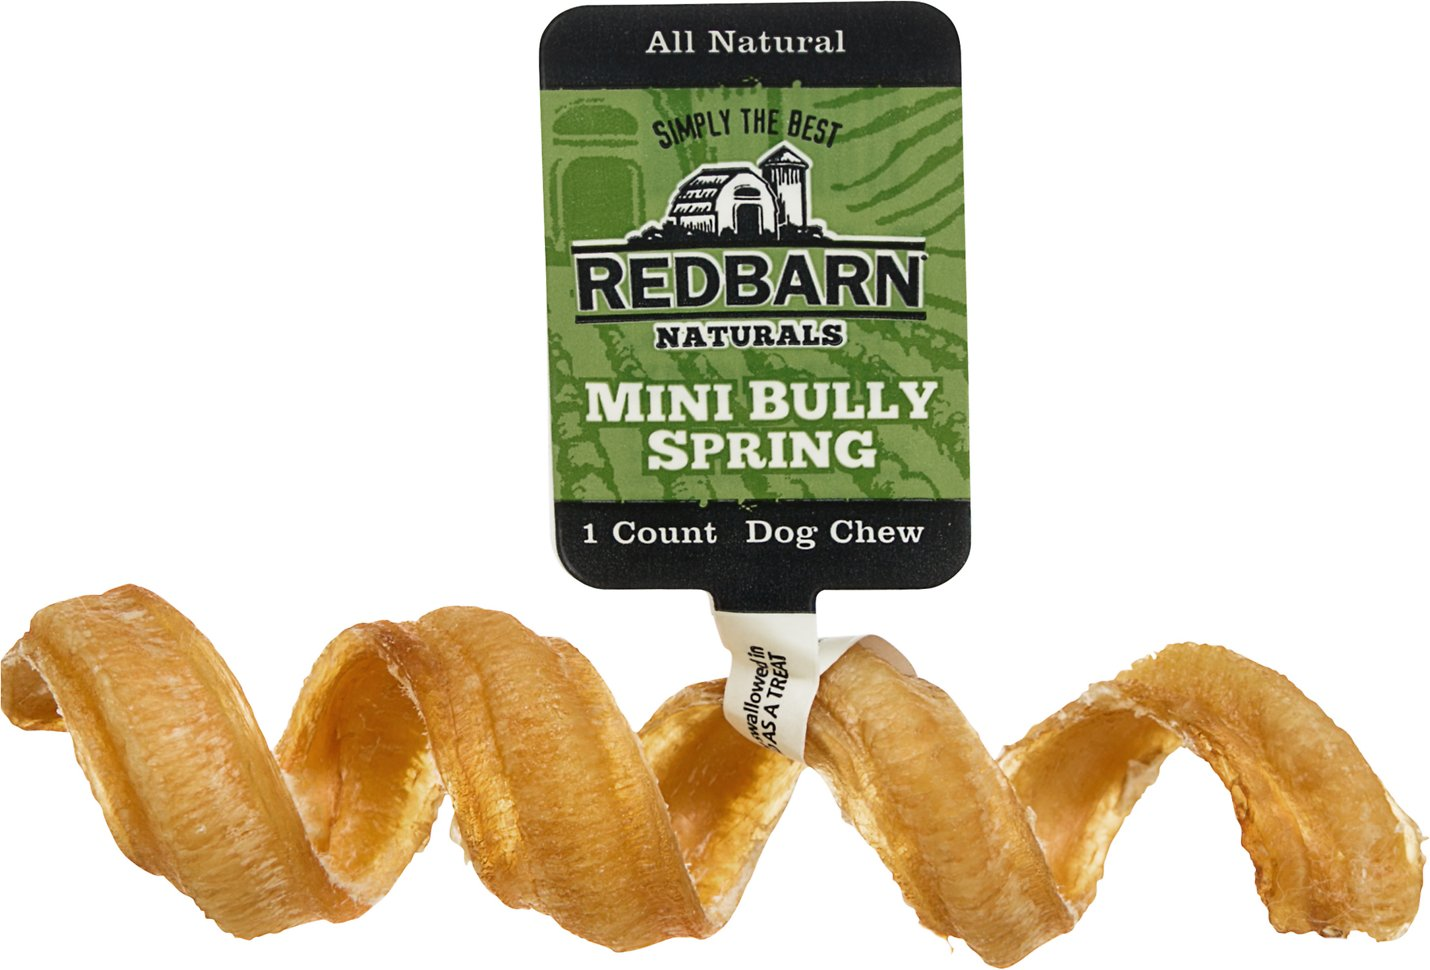 Redbarn Naturals Mini Bully Springs Dog Treats